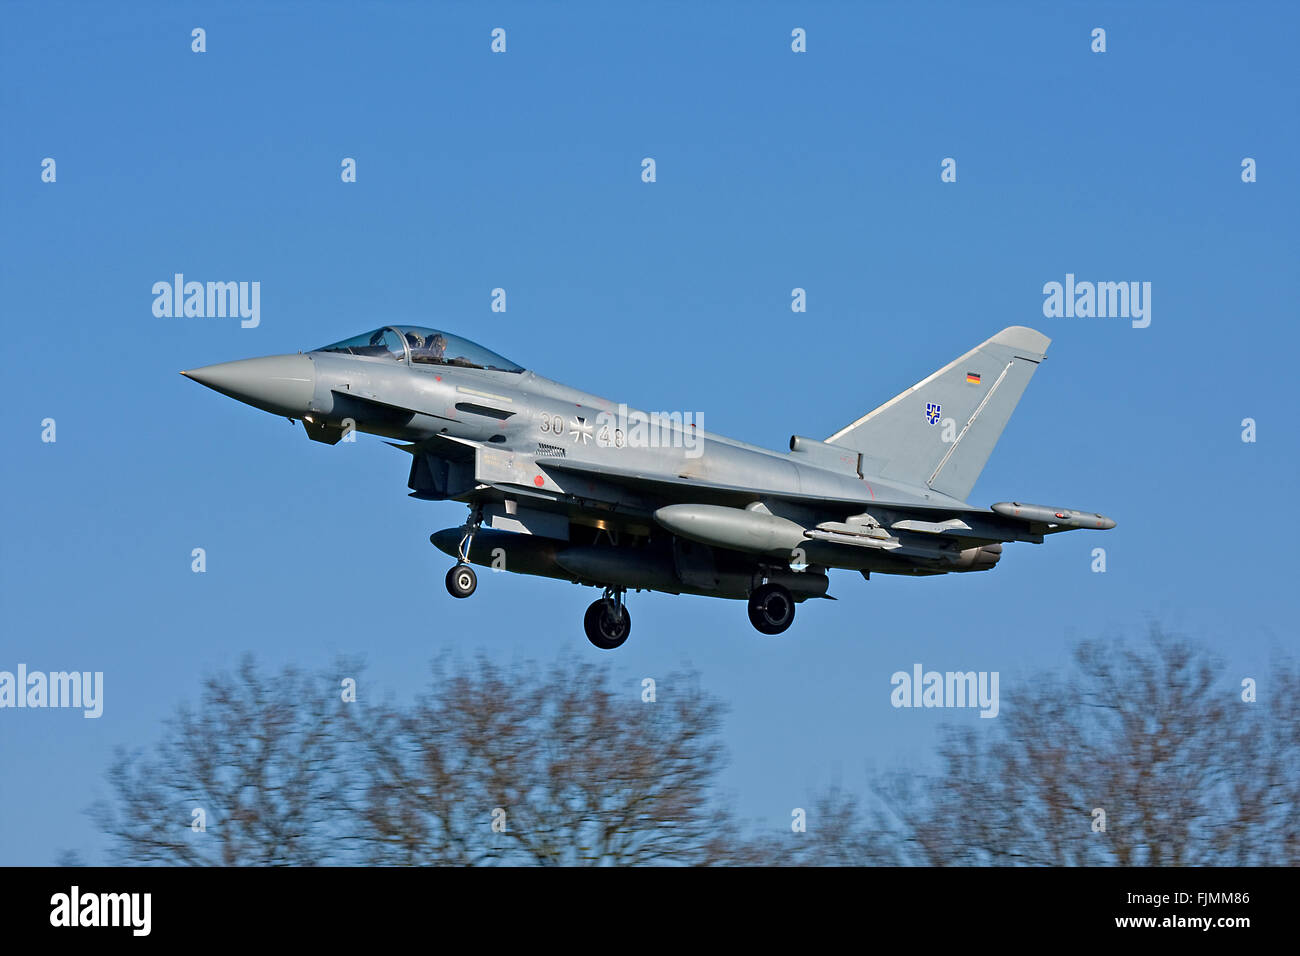 RAF Coningsby, UK. 03rd March 2016. German Air Force, Luftwaffe, Eurofighter Typhoons arrive at RAF Coningsby for Stock Photo